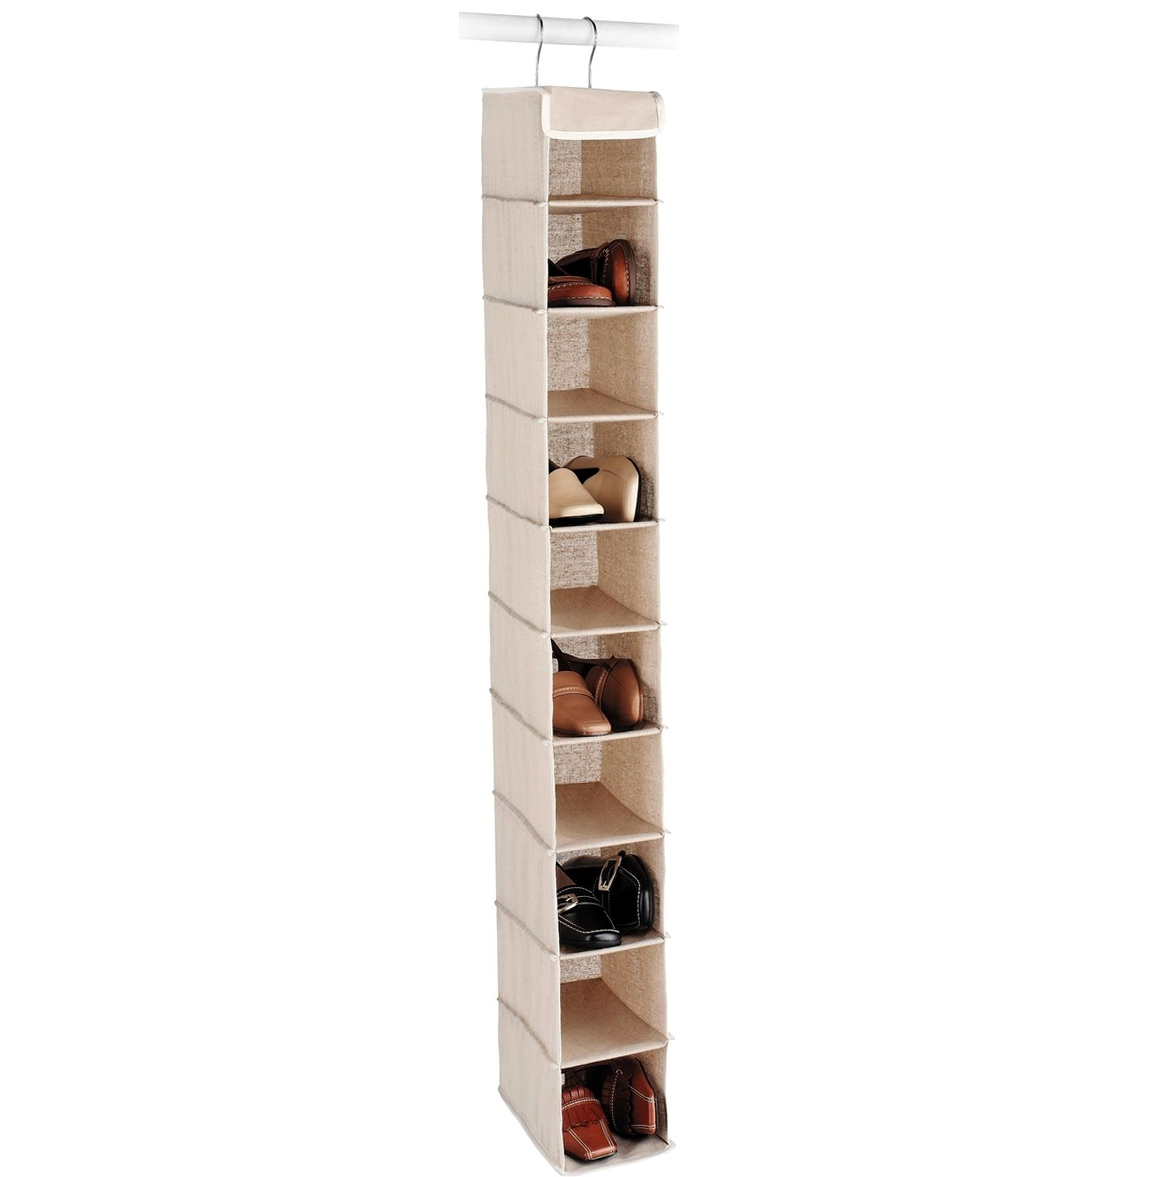 Hanging Shoe Organizer For Closet